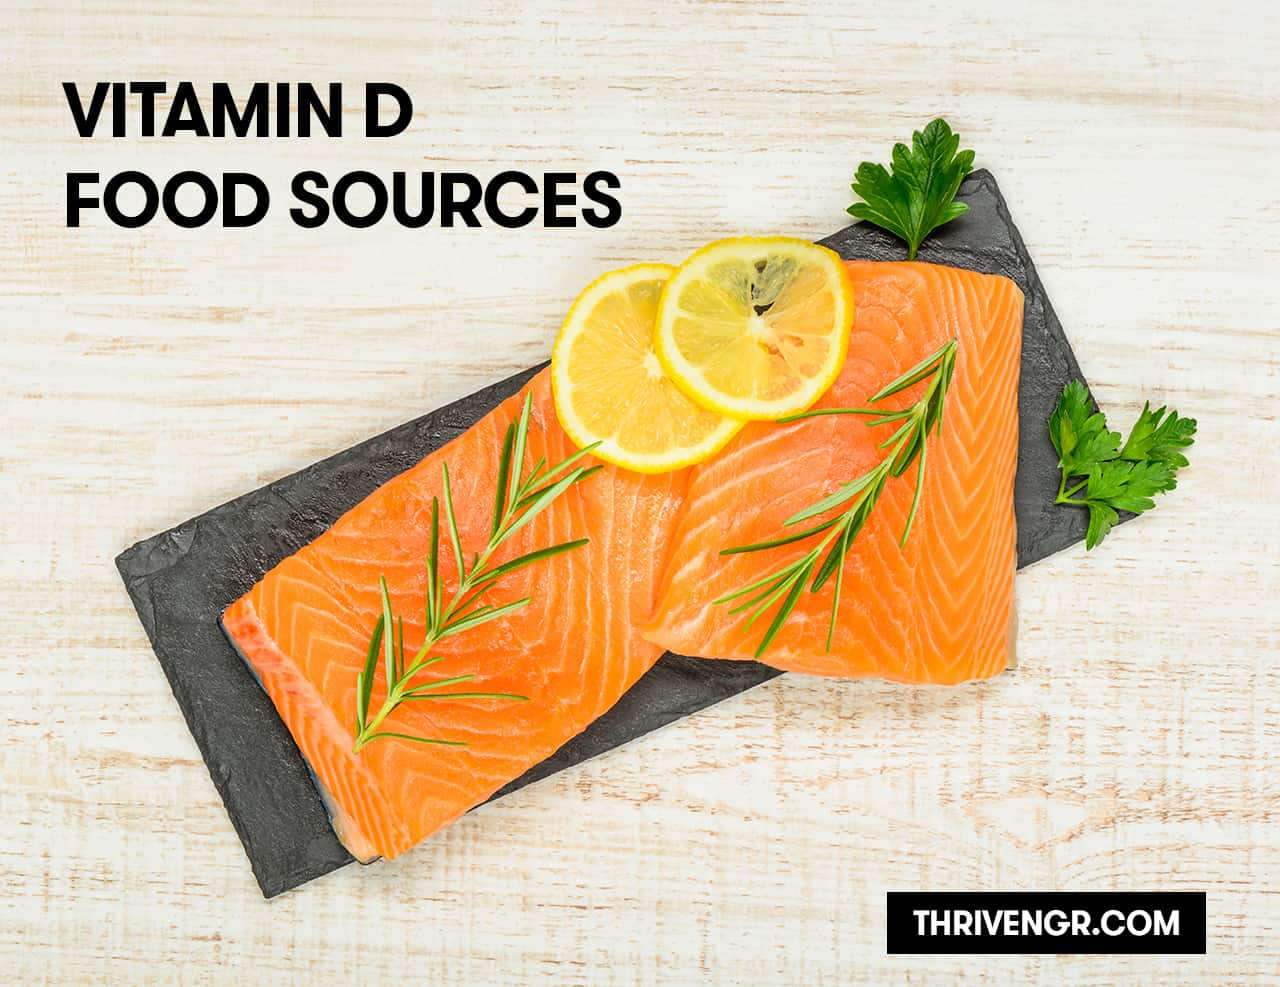 Vitamin D Foods Sources: 9 Vitamin D Foods List to Include In Your Diet